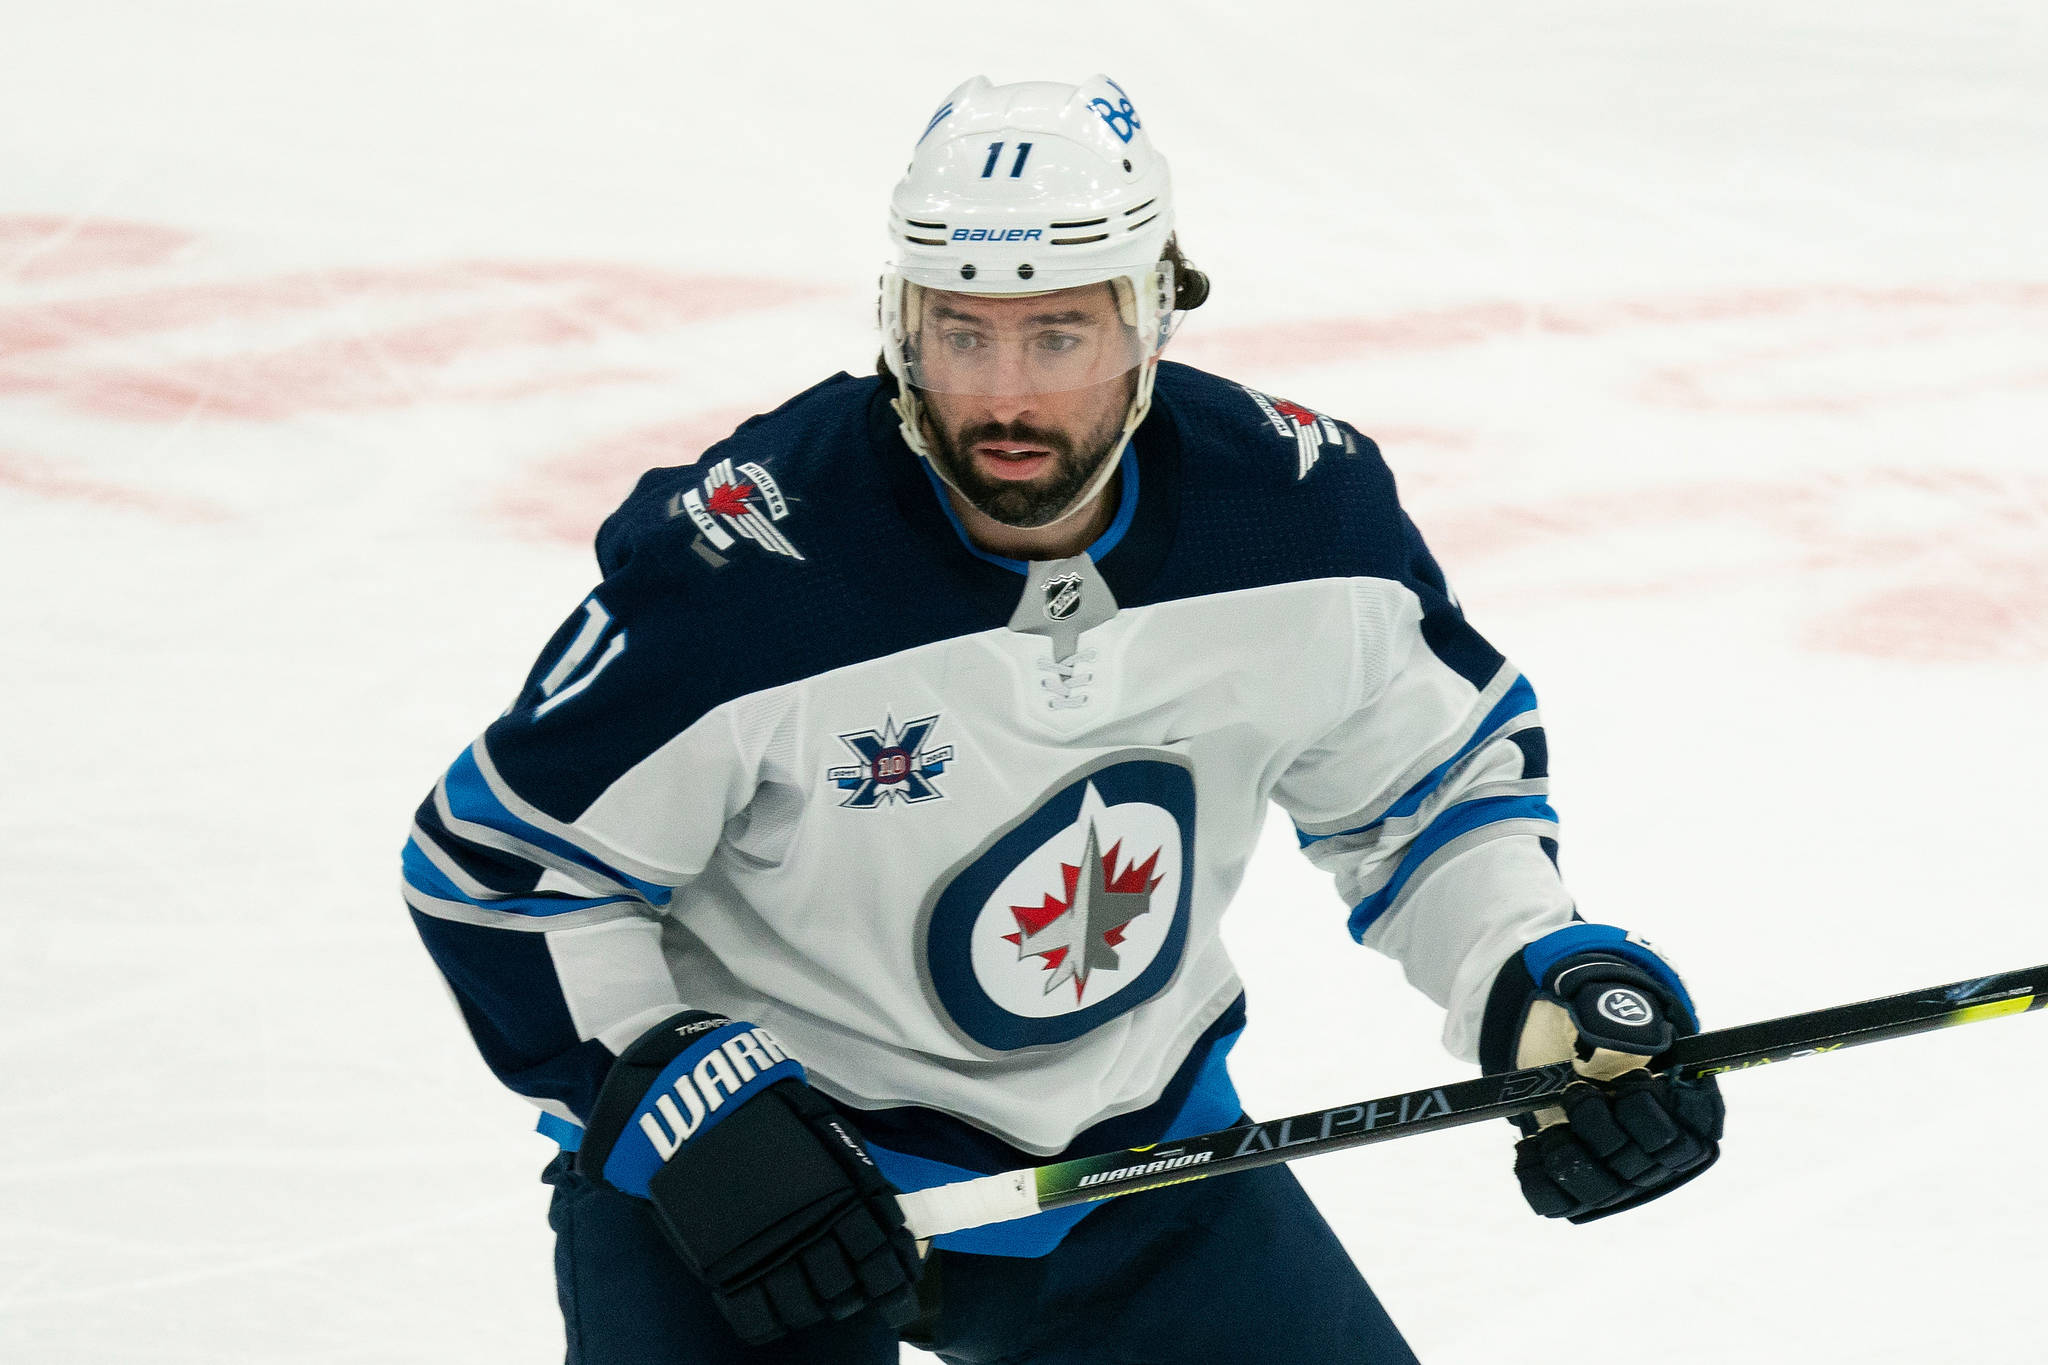 Winnipeg Jets center Nate Thompson (11) during an NHL hockey game against the Toronto Maple Leafs on Thursday, April 15, 2021, in Toronto, Canada. (AP Photo/Peter Power)